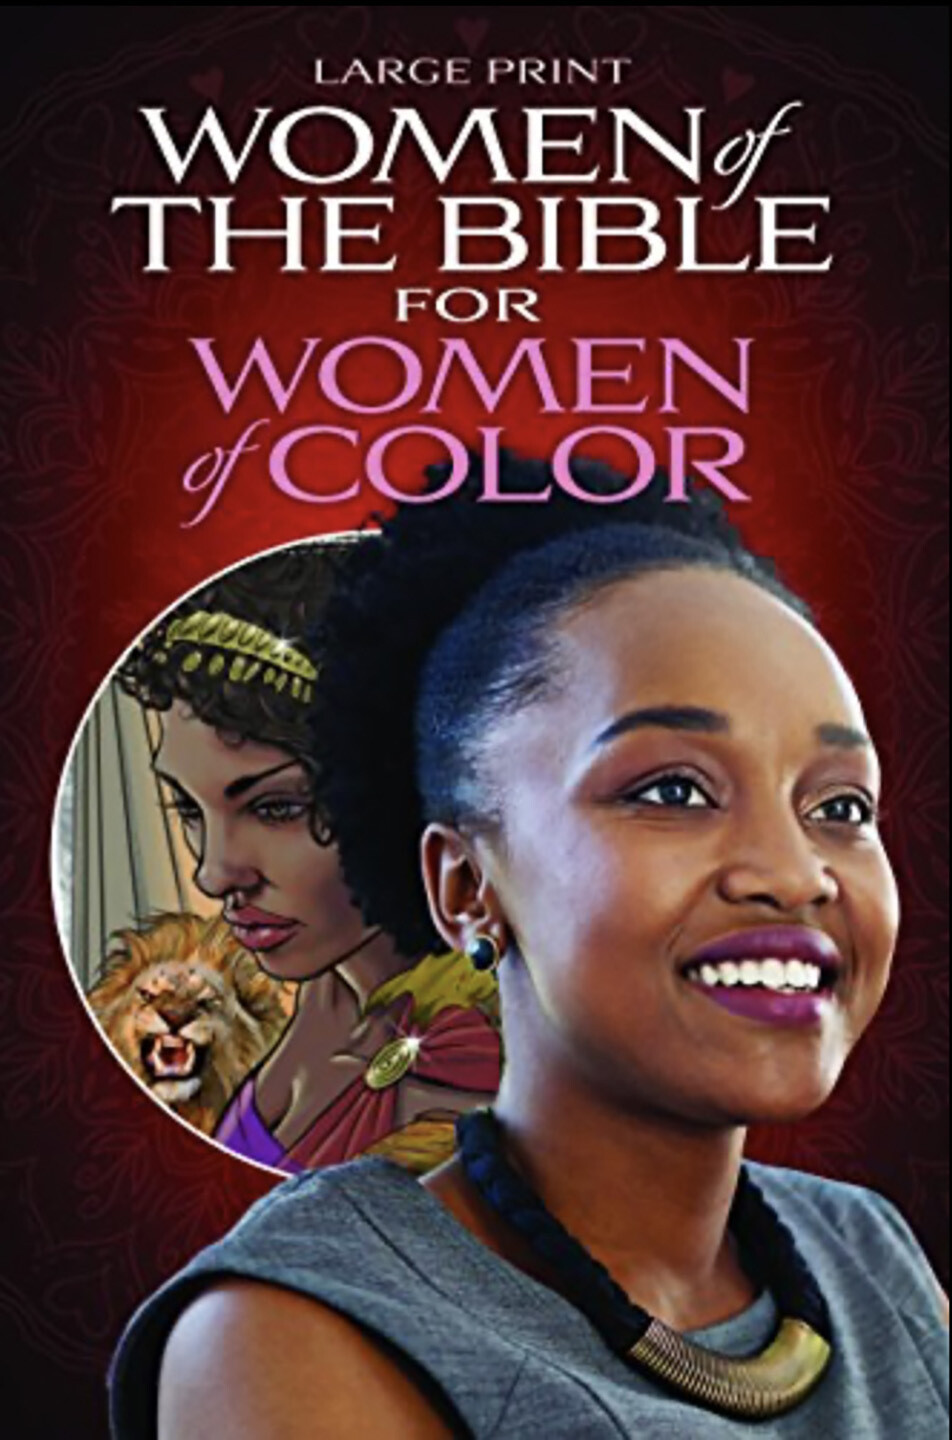 WOMEN OF THE BIBLE FOR WOMEN OF COLOR LARGE PRINT